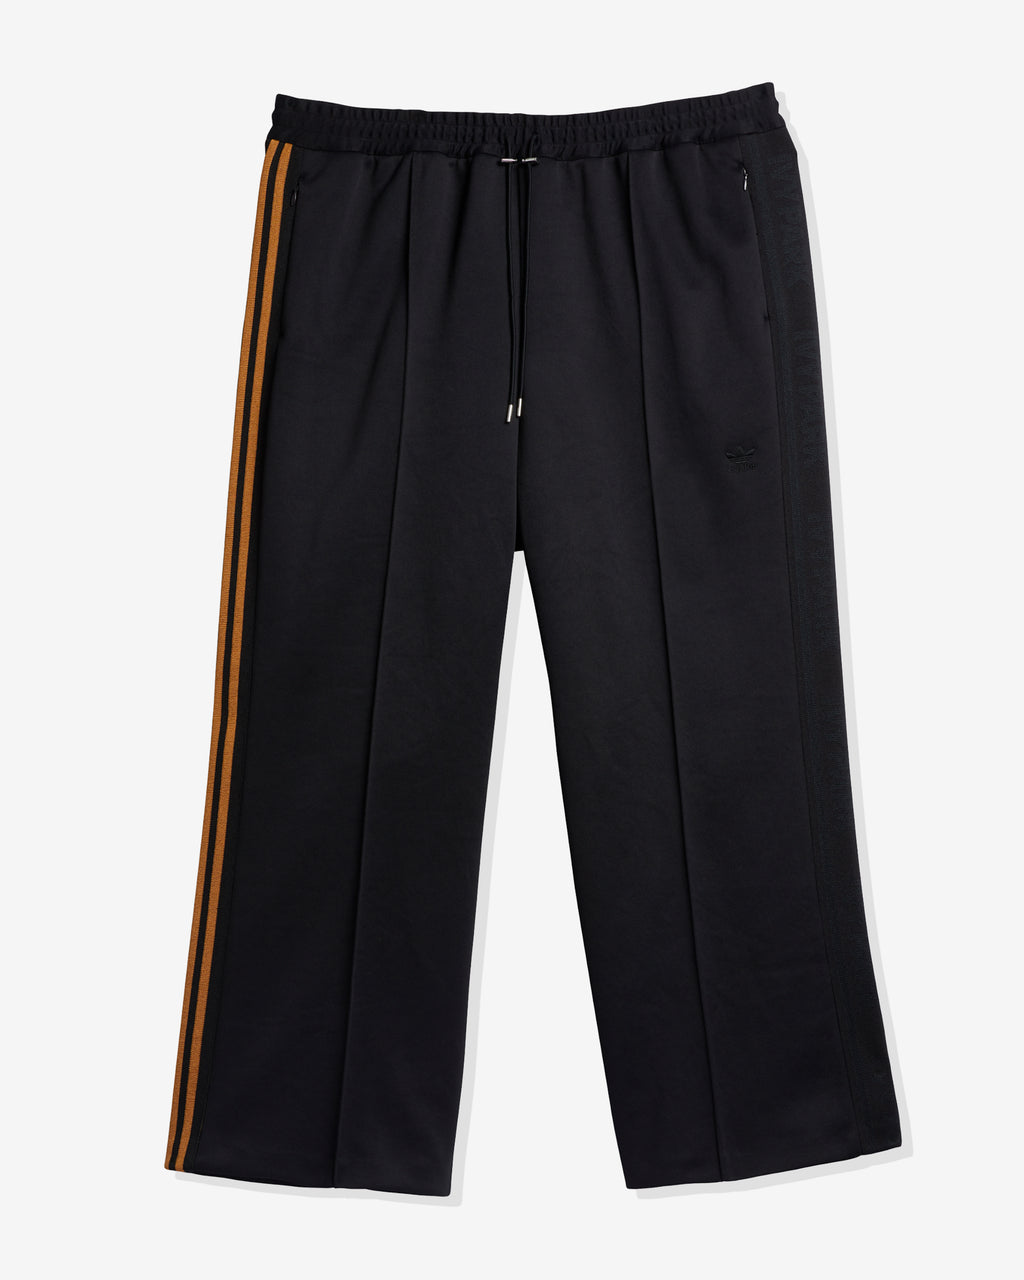 ADIDAS X IVP SUIT PANT (PLUS) - BLACK